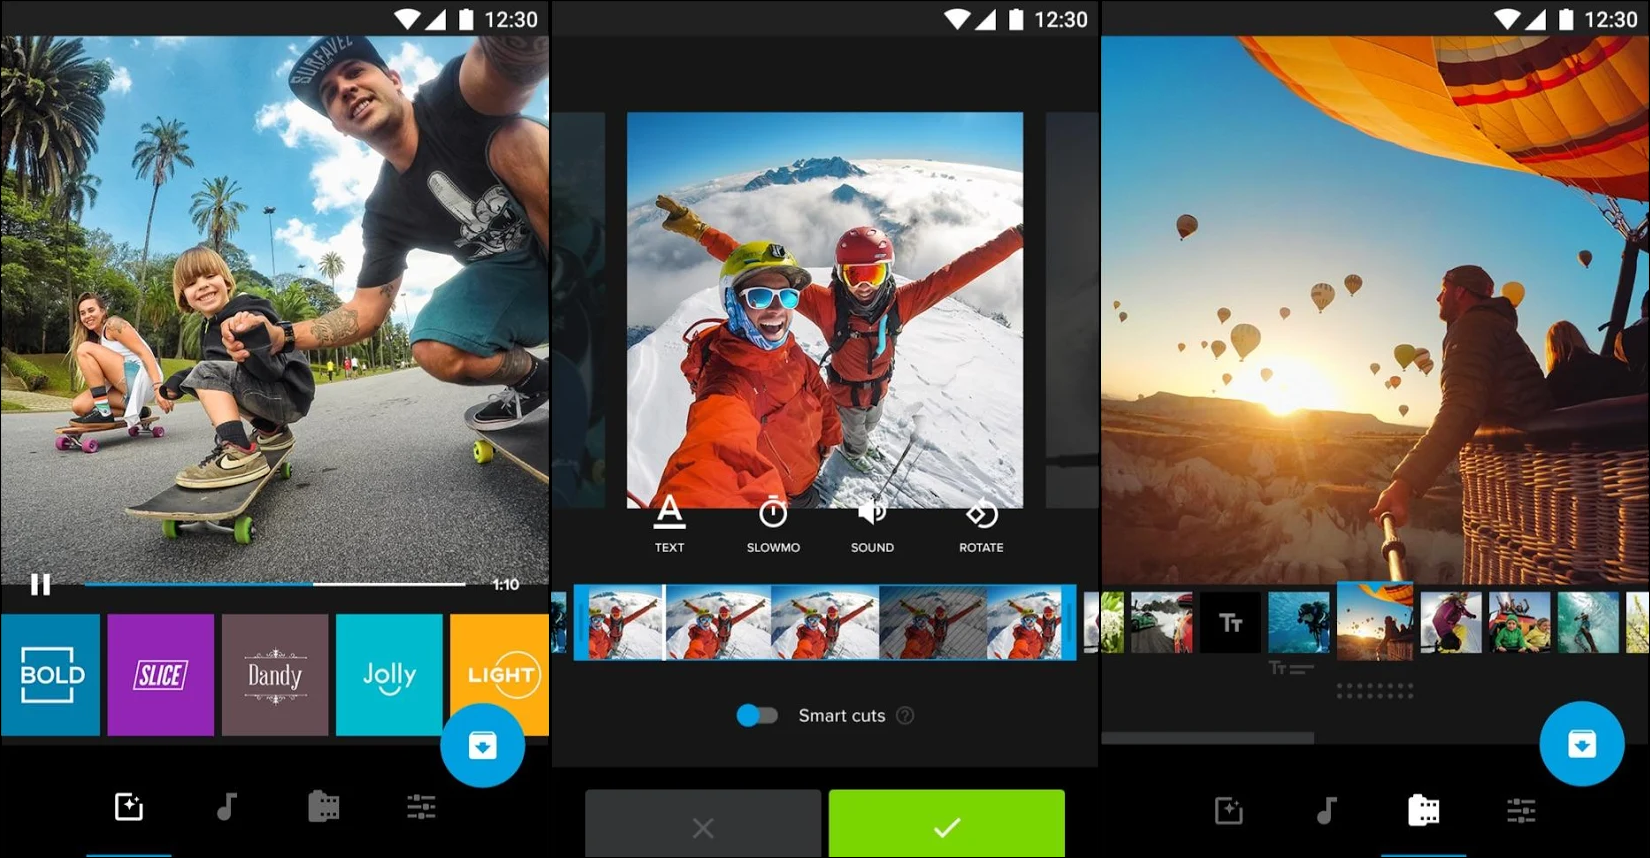 GoPro's Quik smartphone editor offers more options and a better interface than any alternatives.